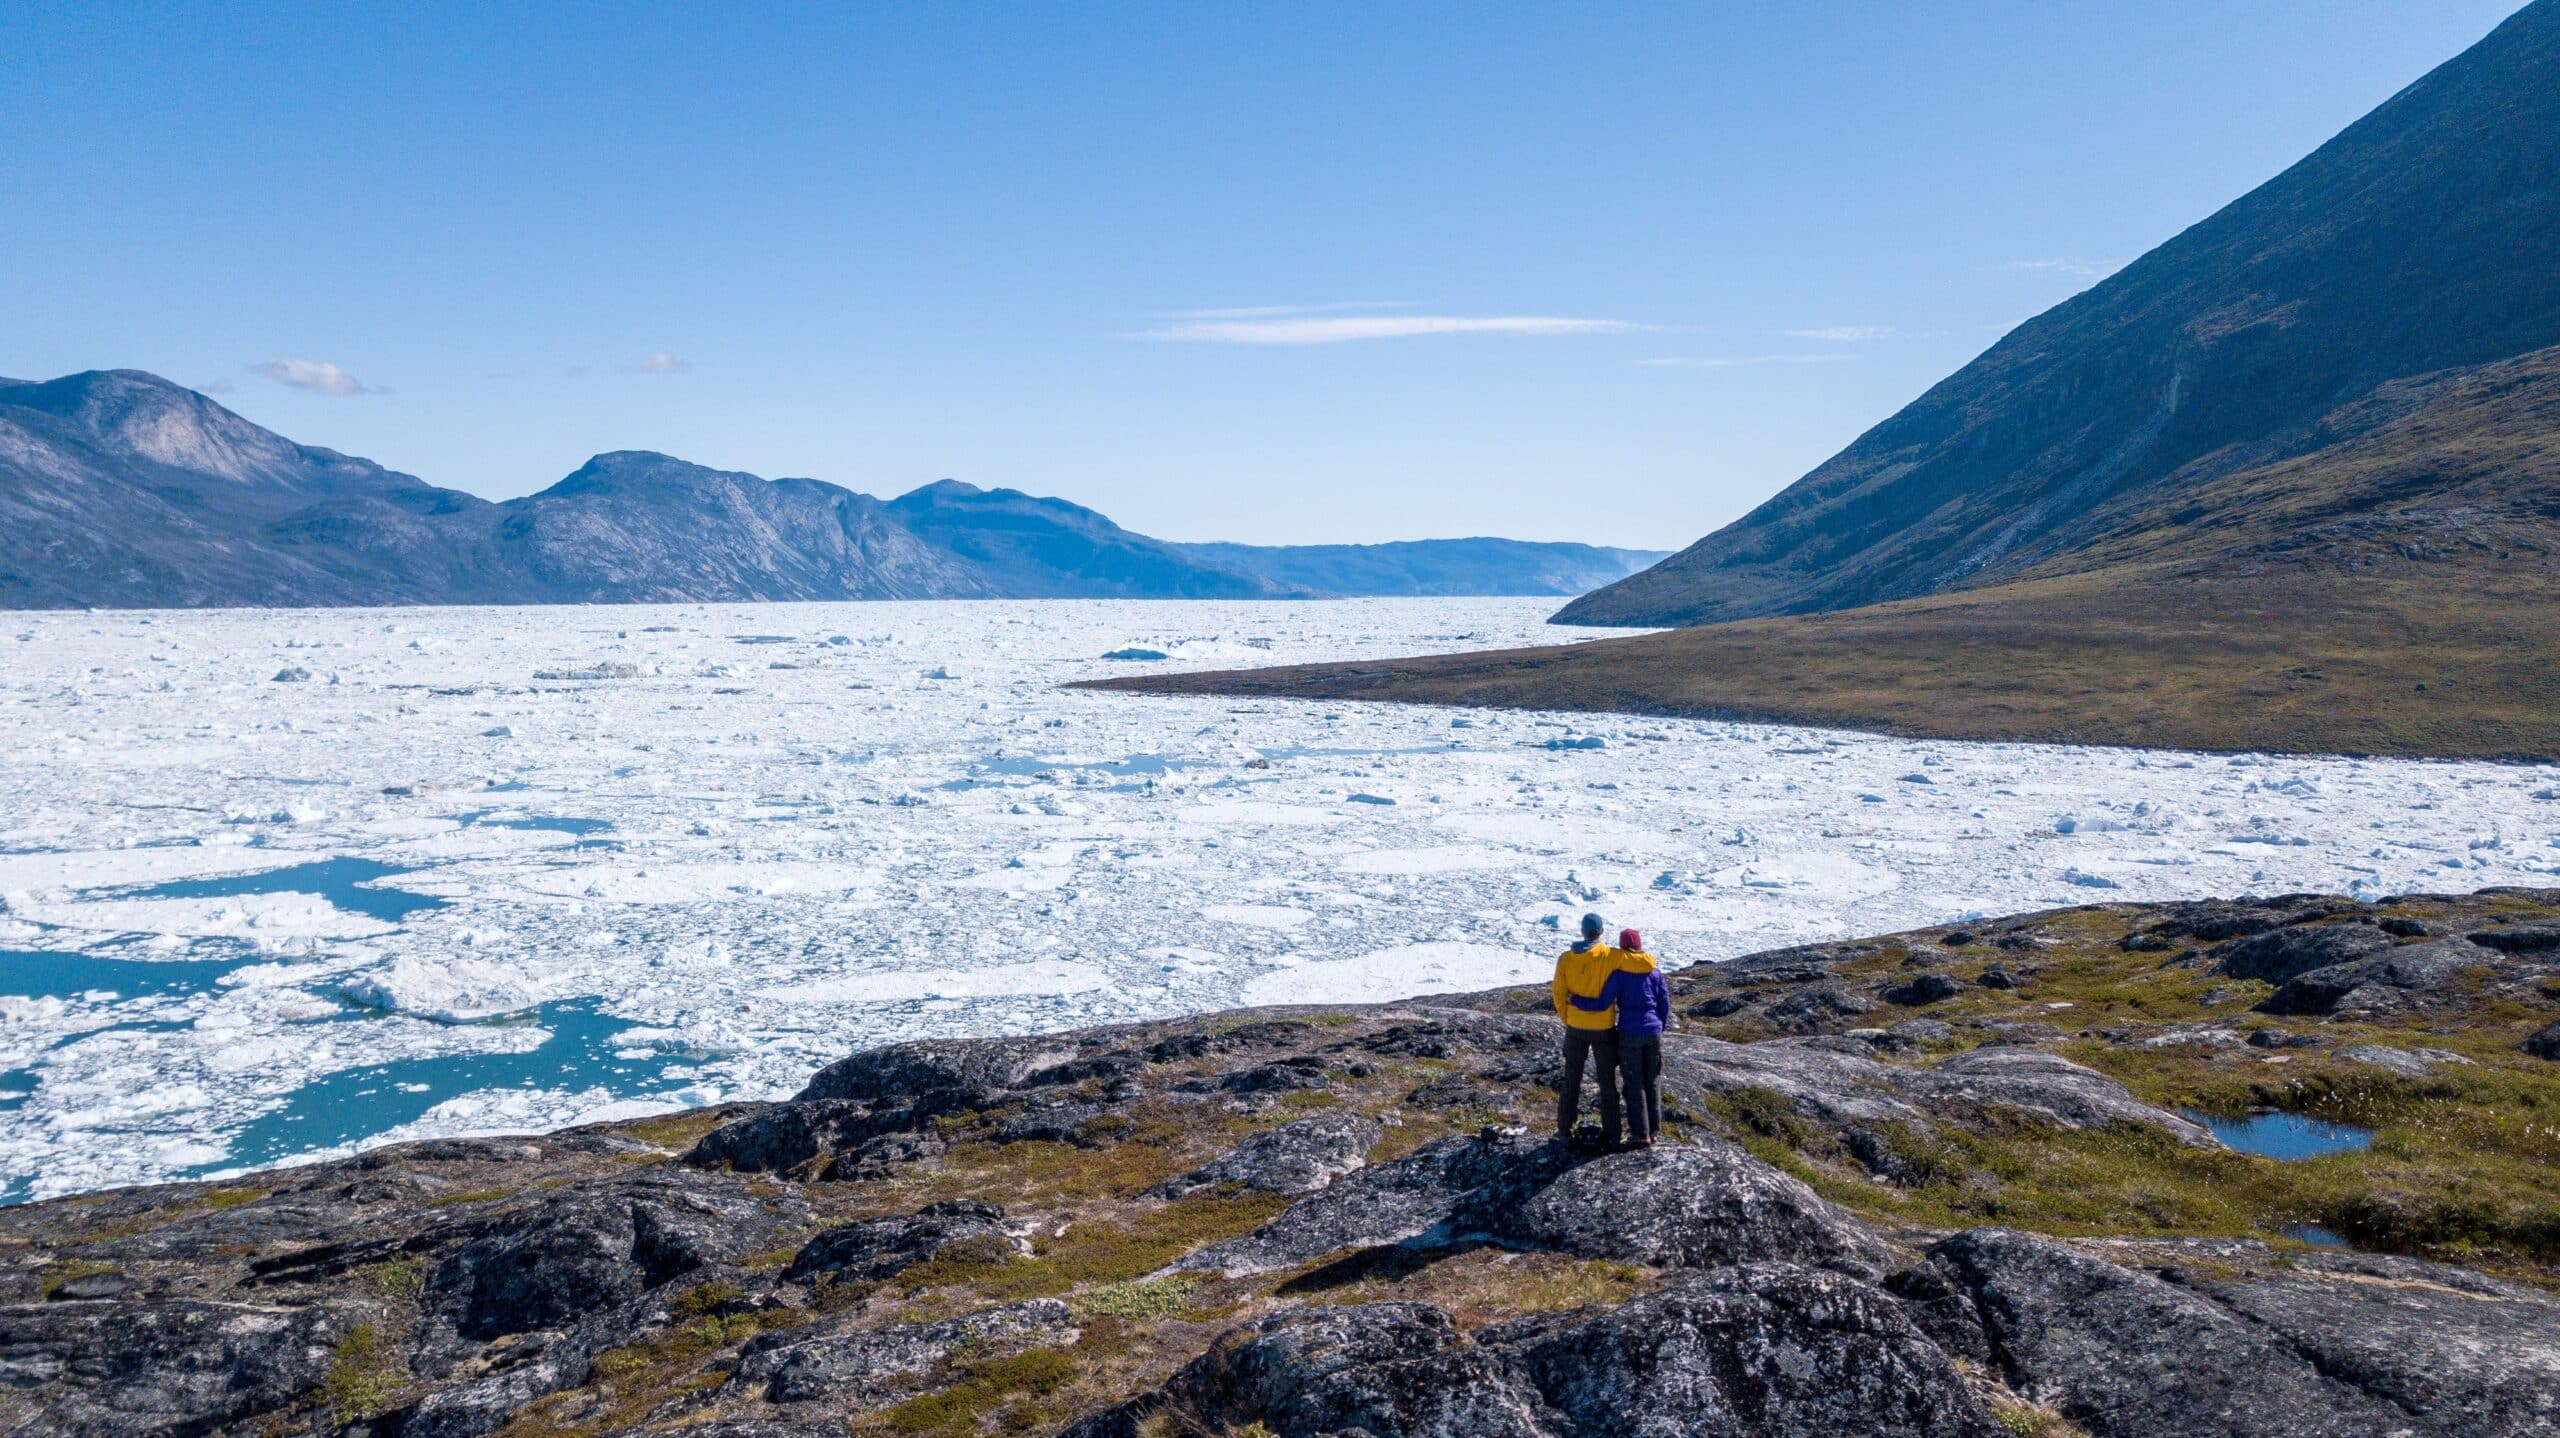 Hiking to the Nuuk Icefjord